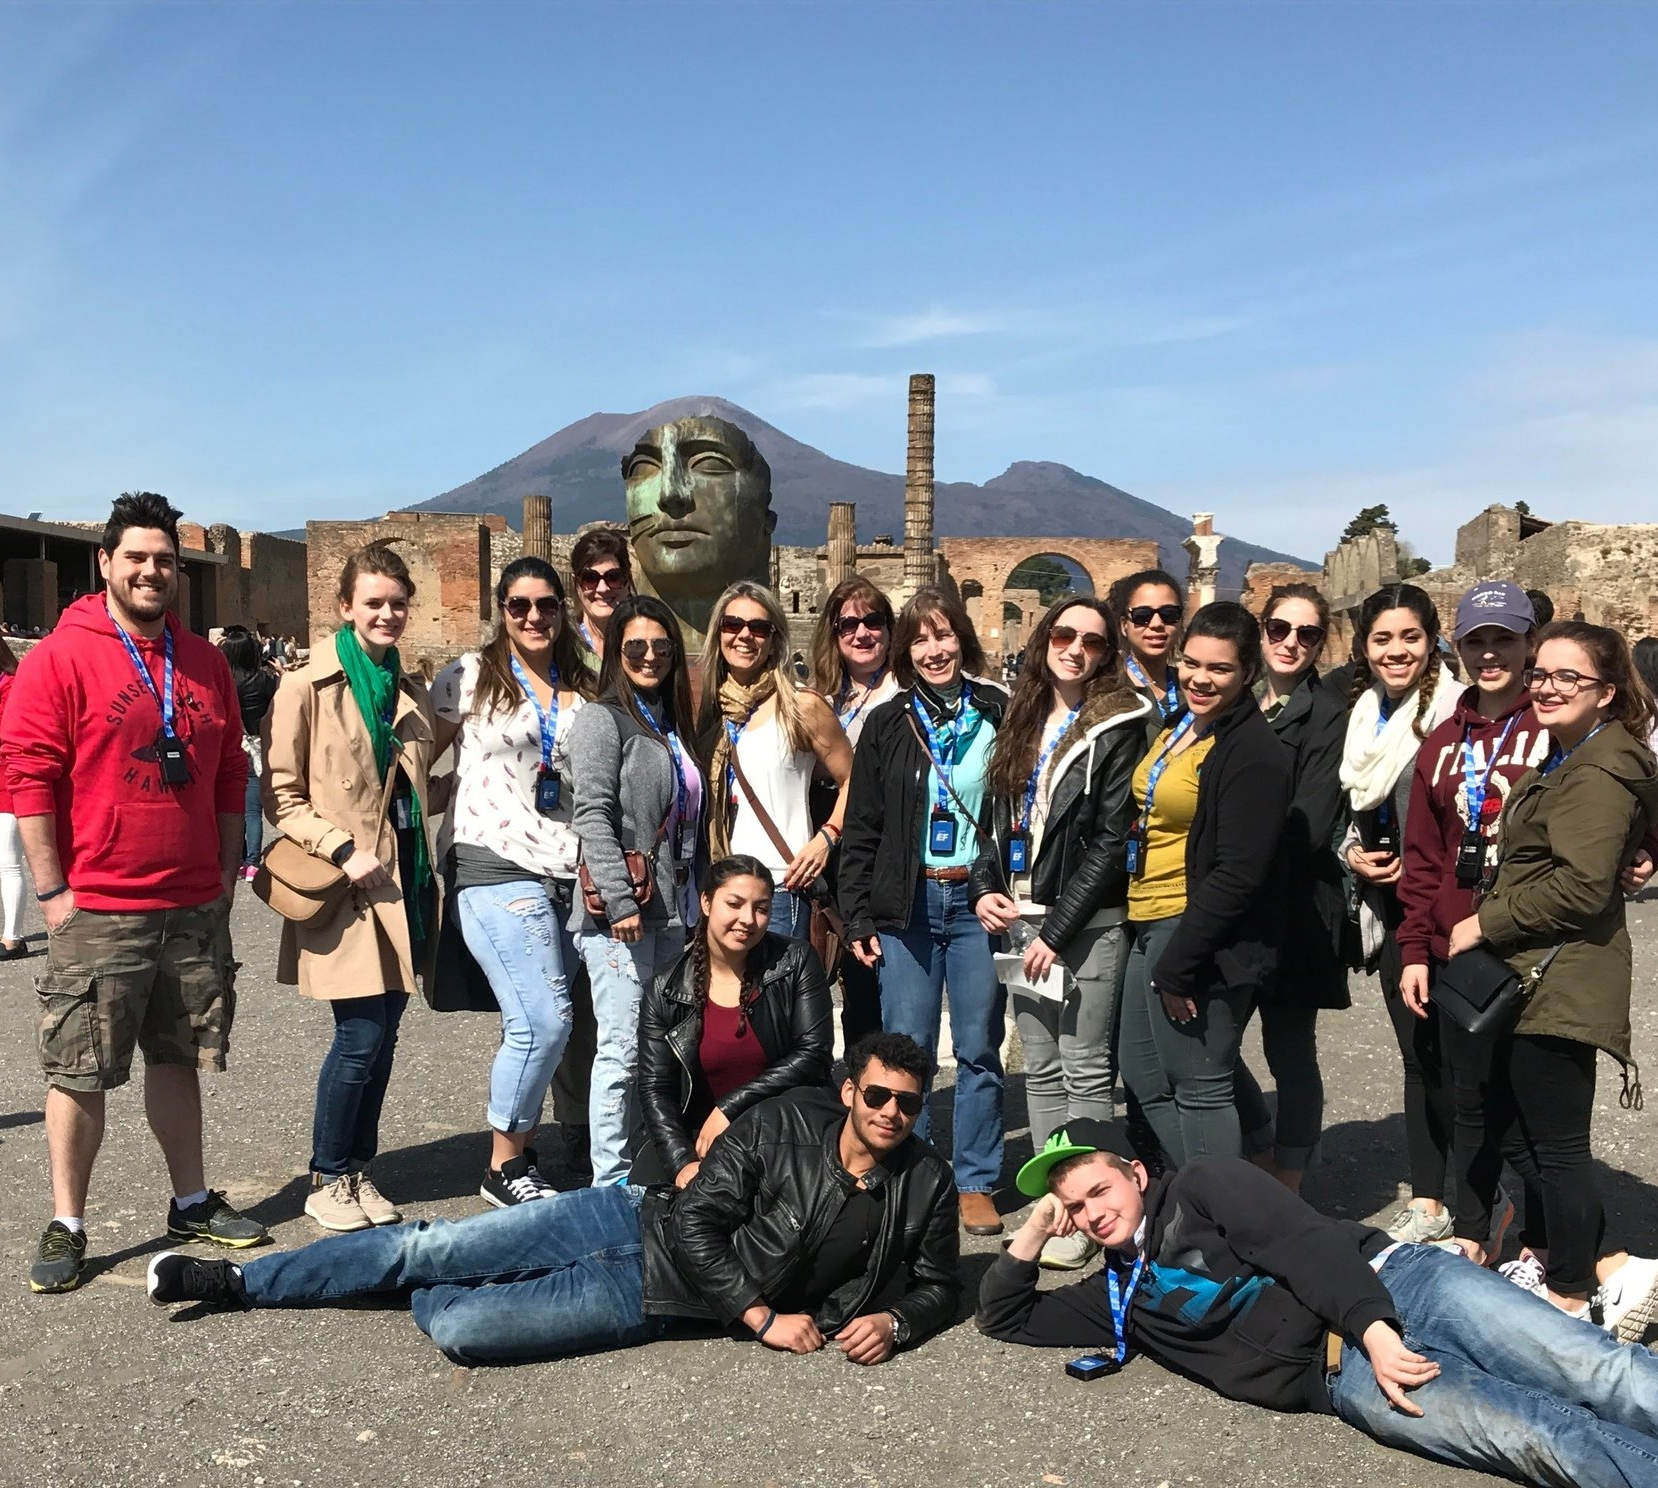 South Lancaster Academy students visiting the ruins of Pompeii as part of their Mediterranean study tour in the spring of 2017